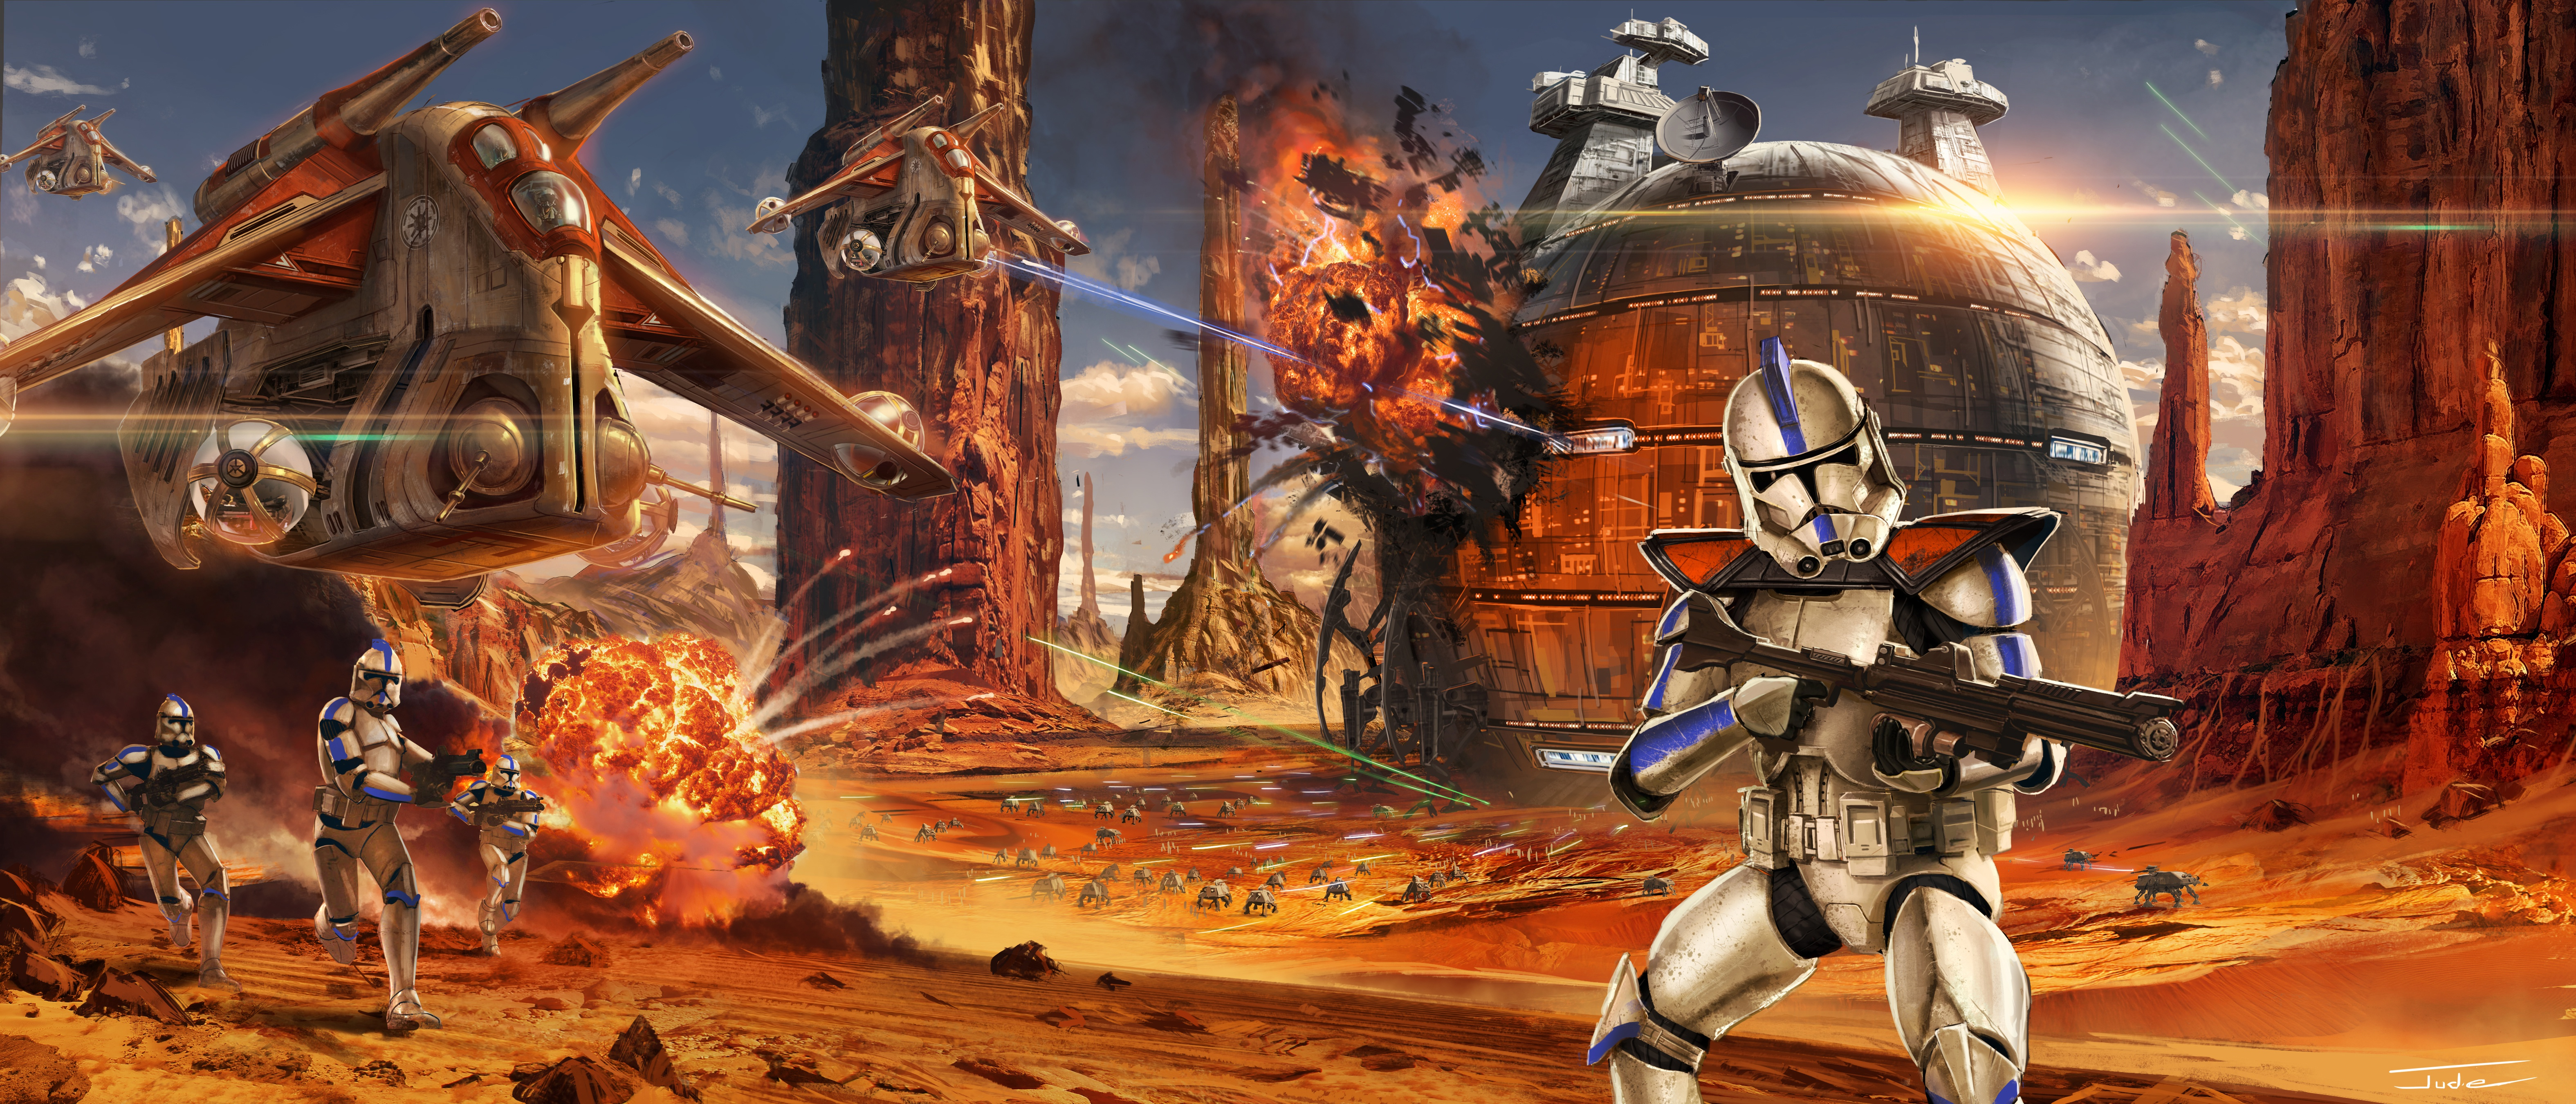 Star Wars The Clone Wars Wallpaper: Star Wars Artwork Geonosis Clone Trooper, HD Artist, 4k